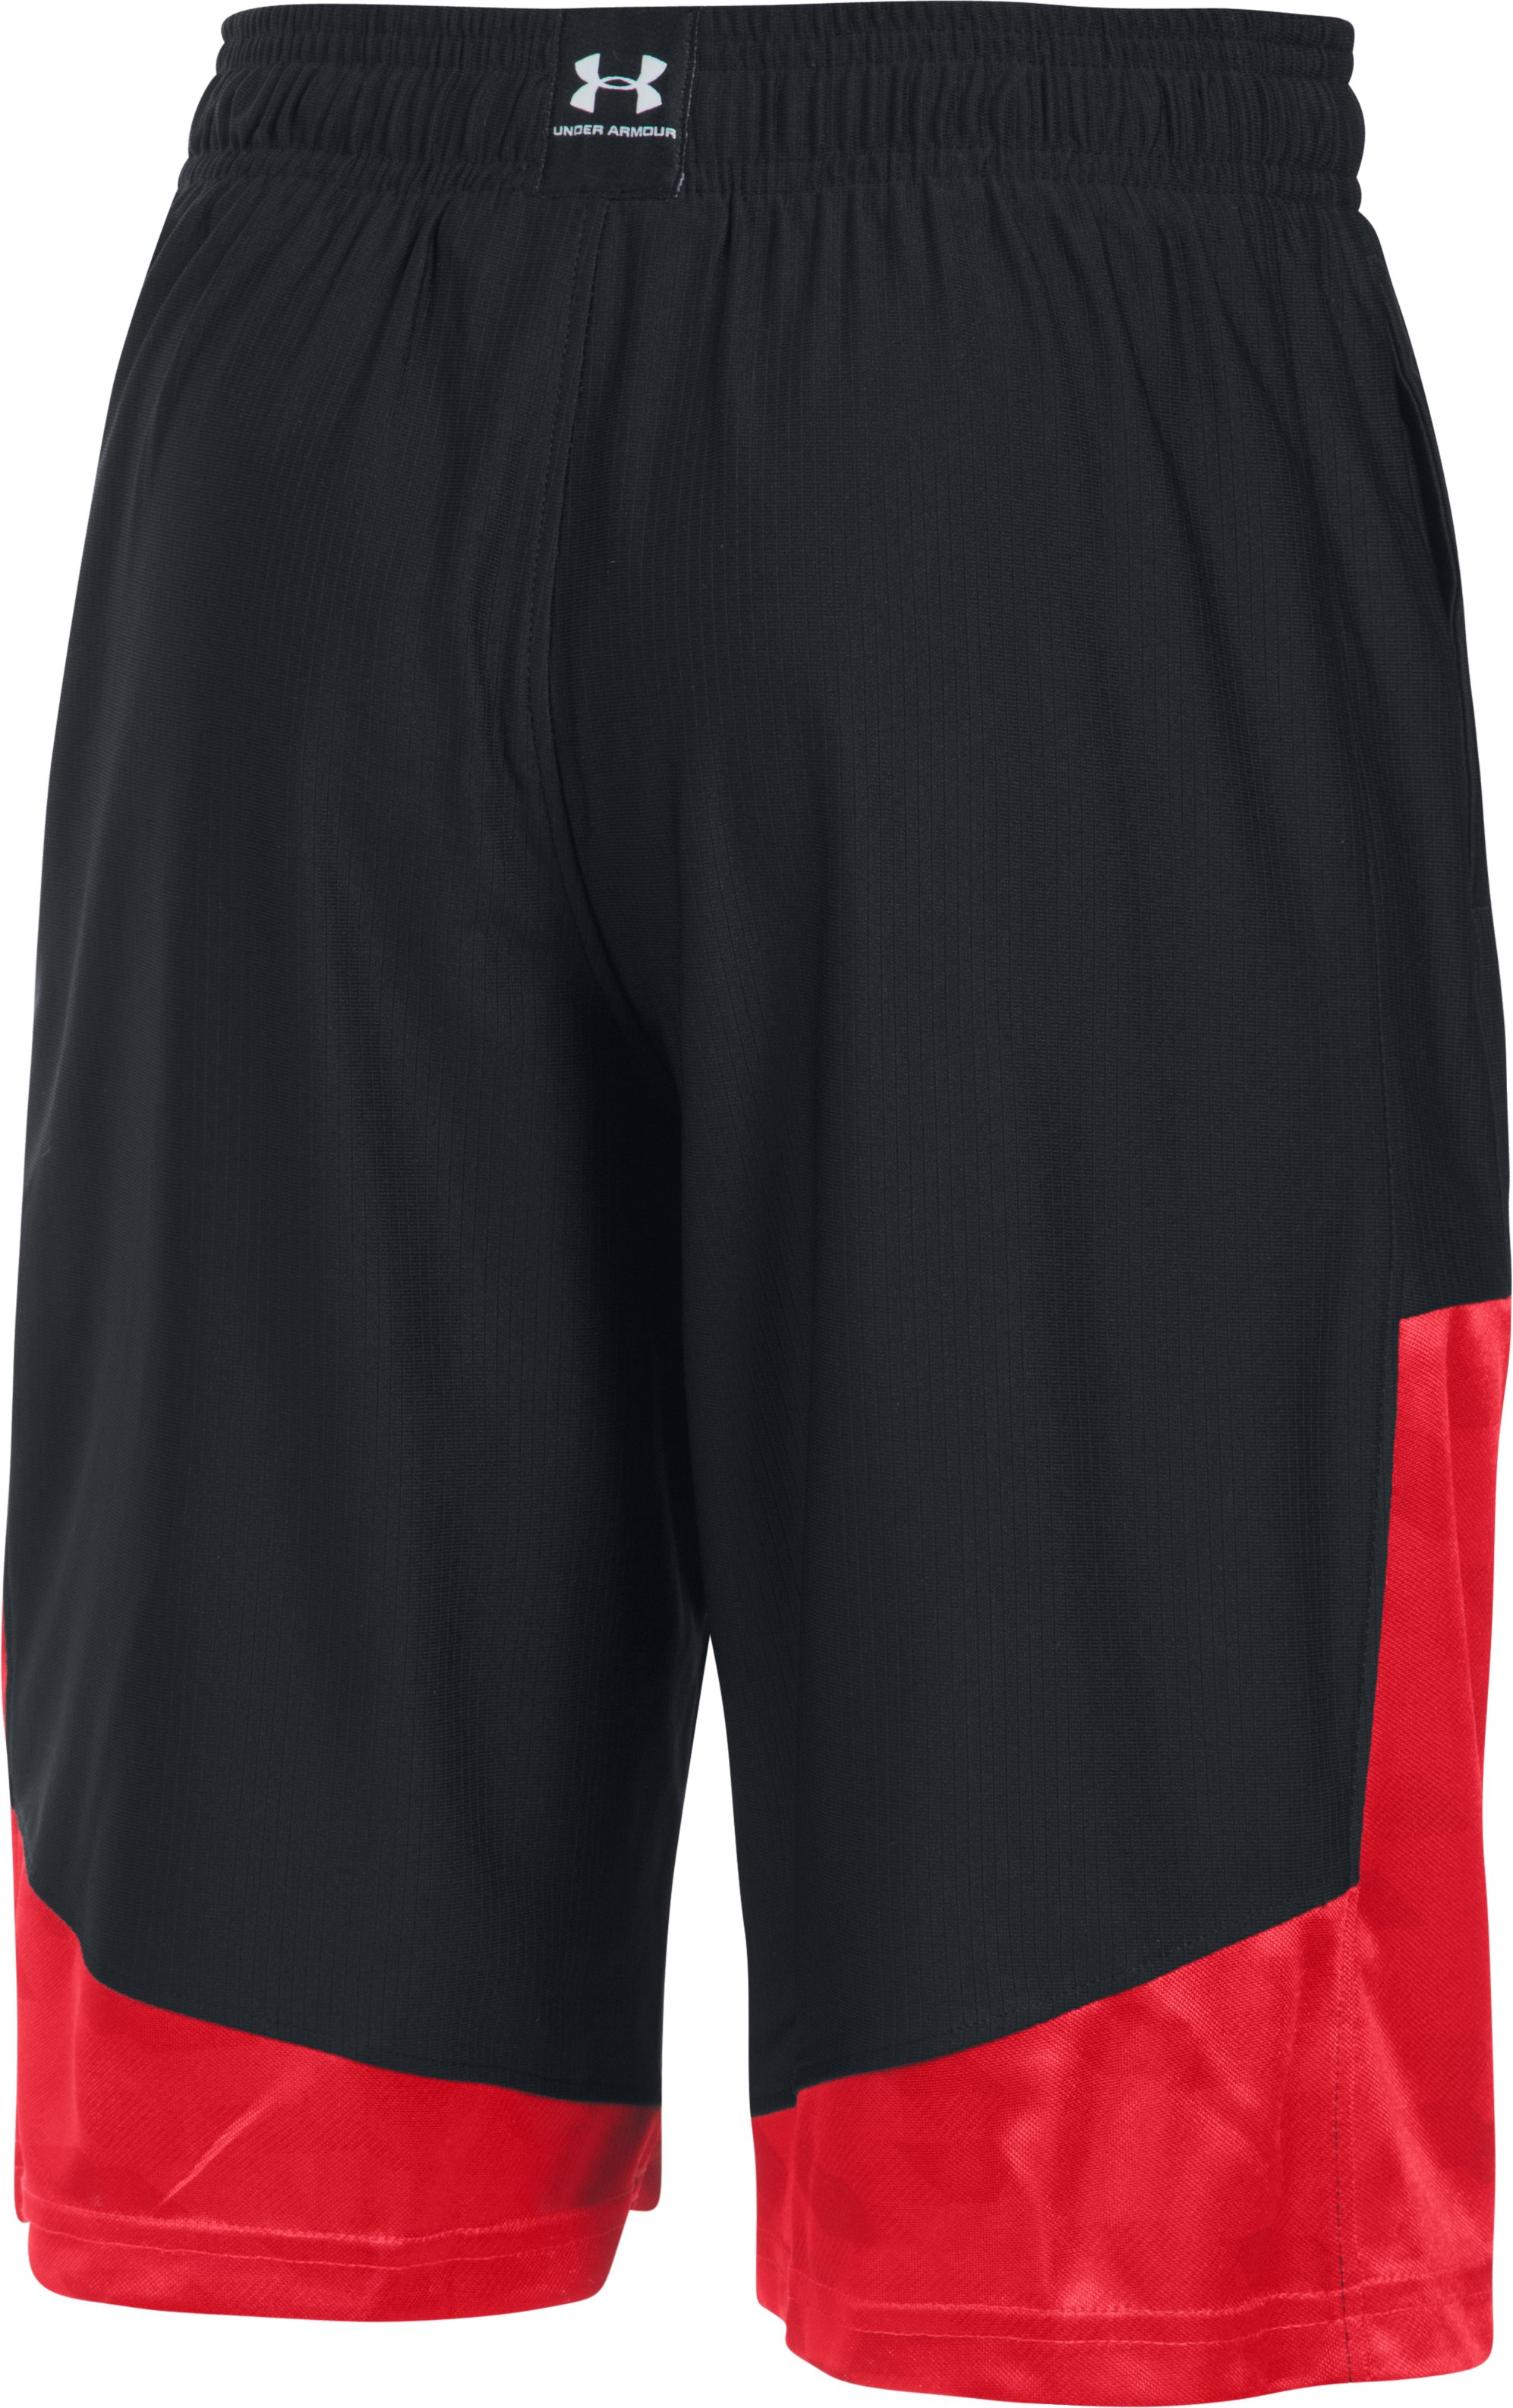 Boys' SC30 Performance Shorts, Black